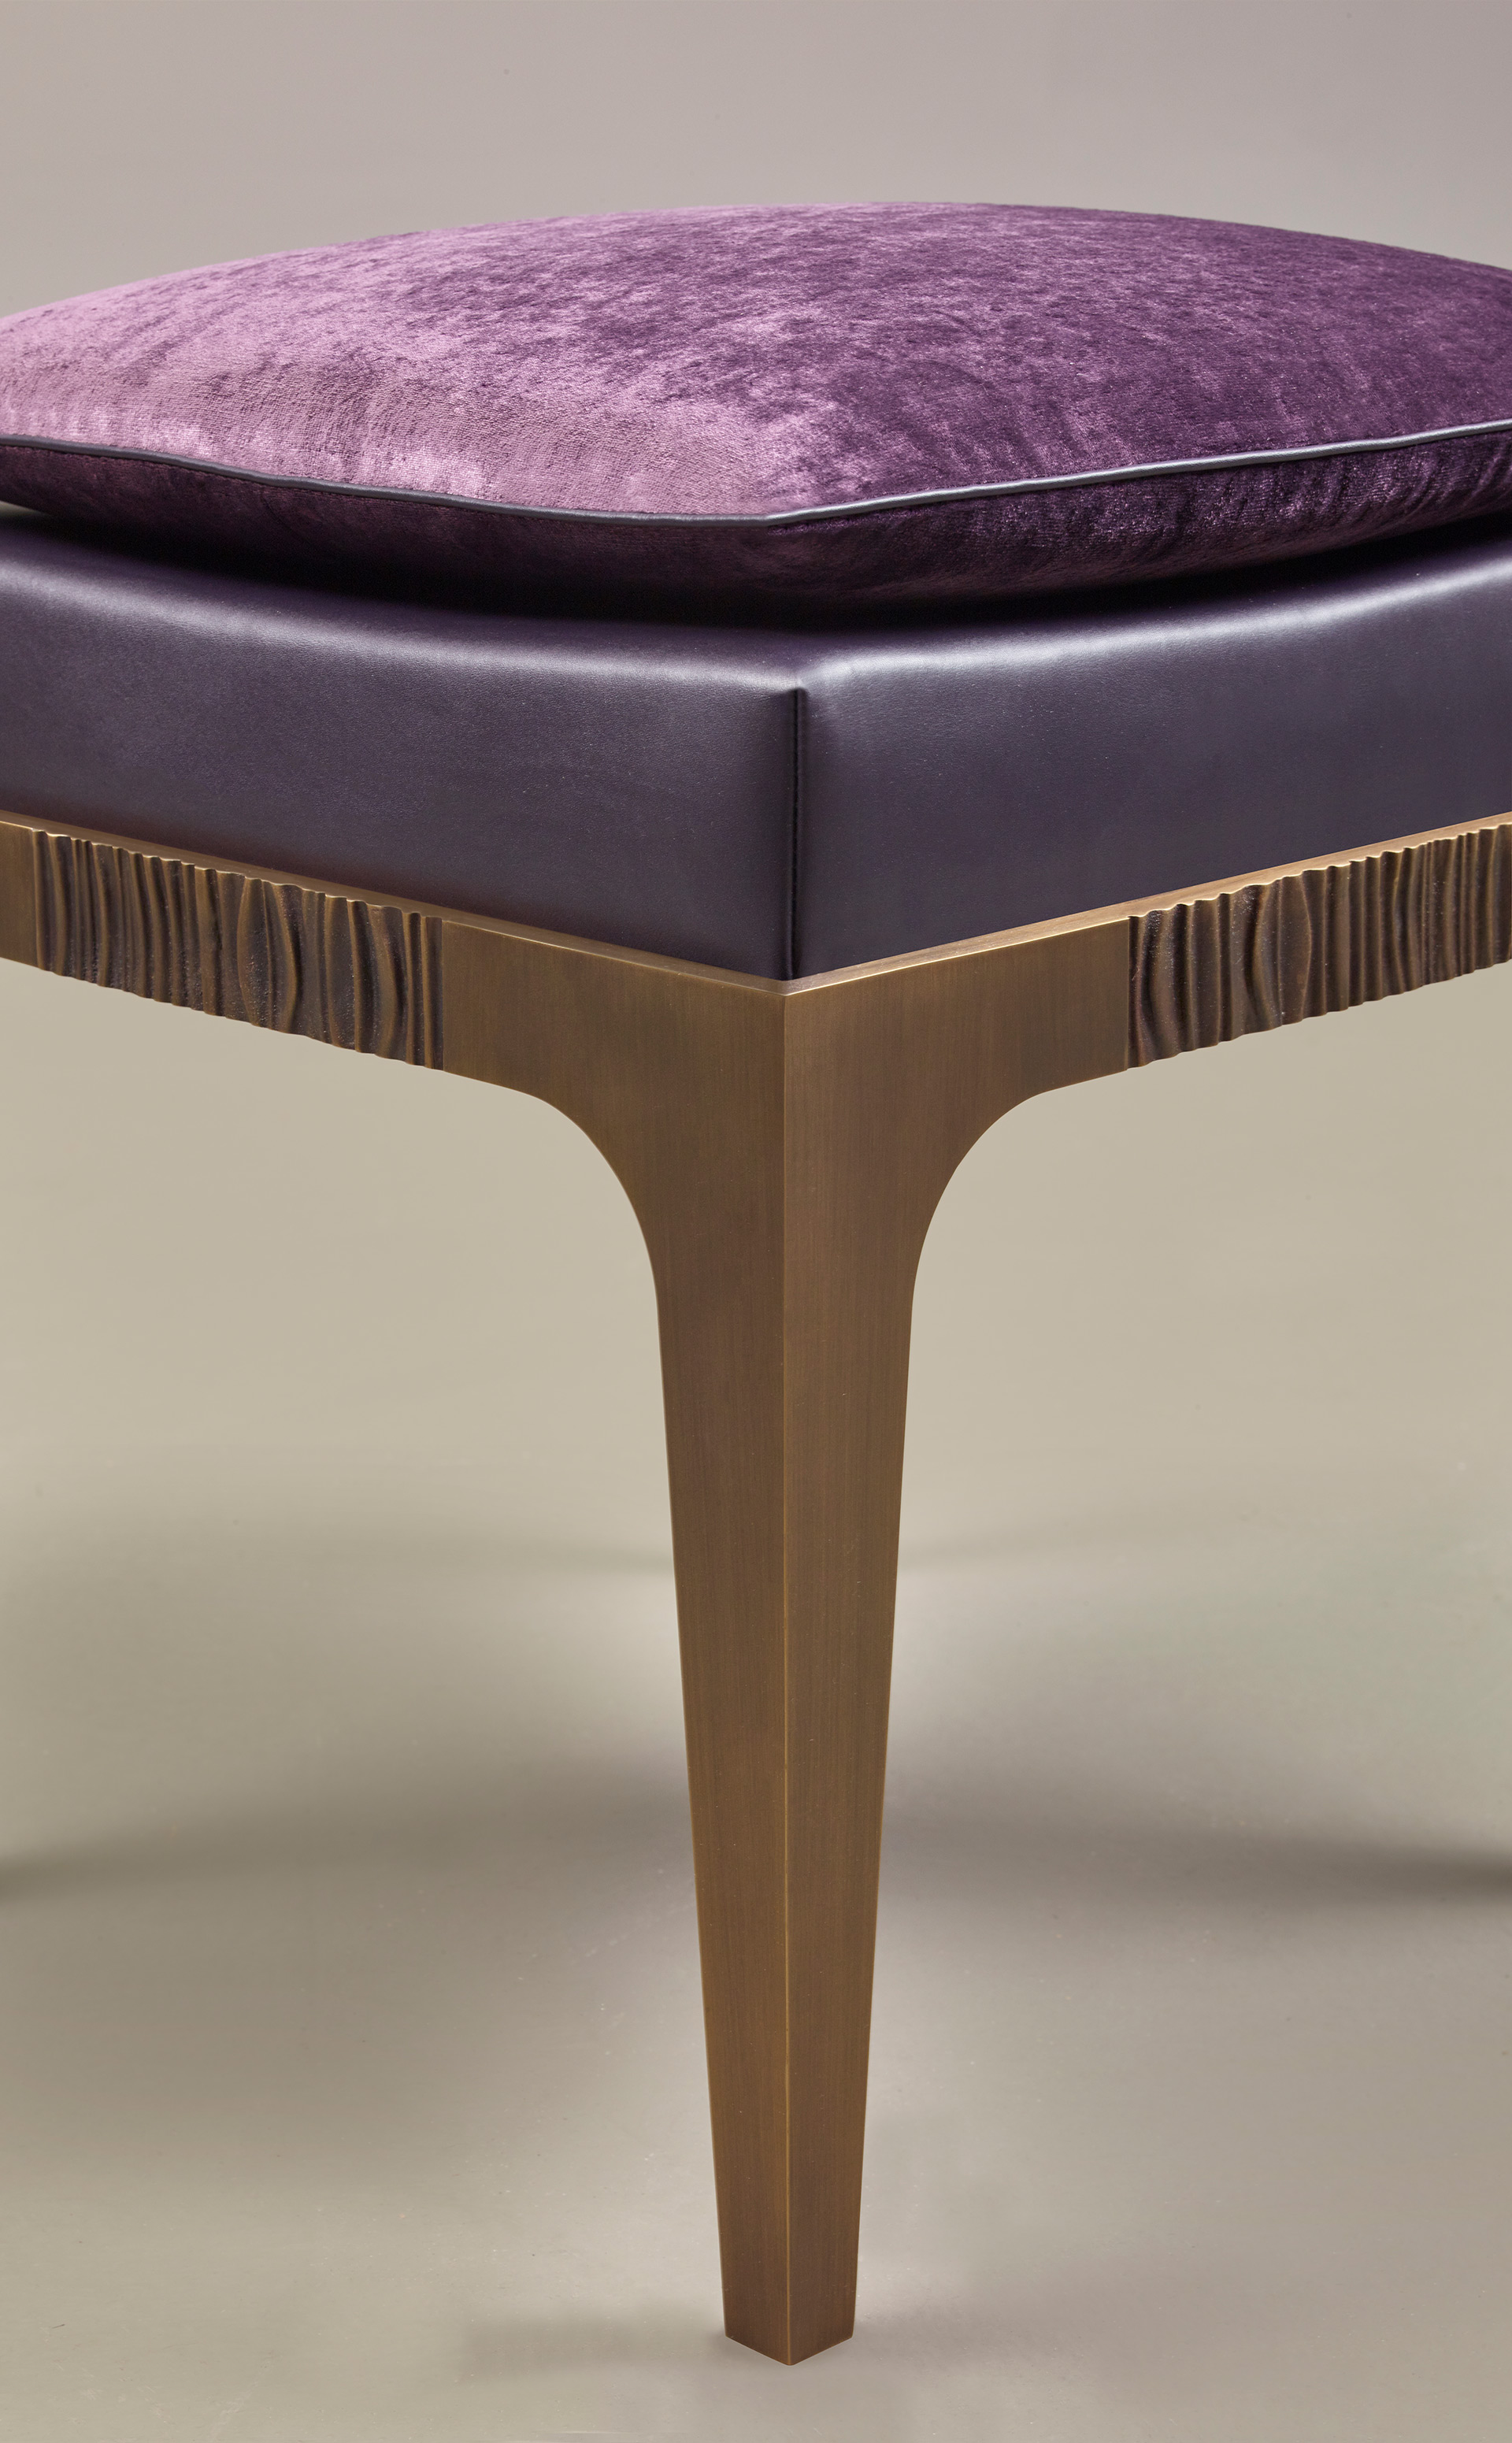 Detail of Montagu, a bronze stool with leather seat and fabric cushion, from Promemoria's The London Collection | Promemoria